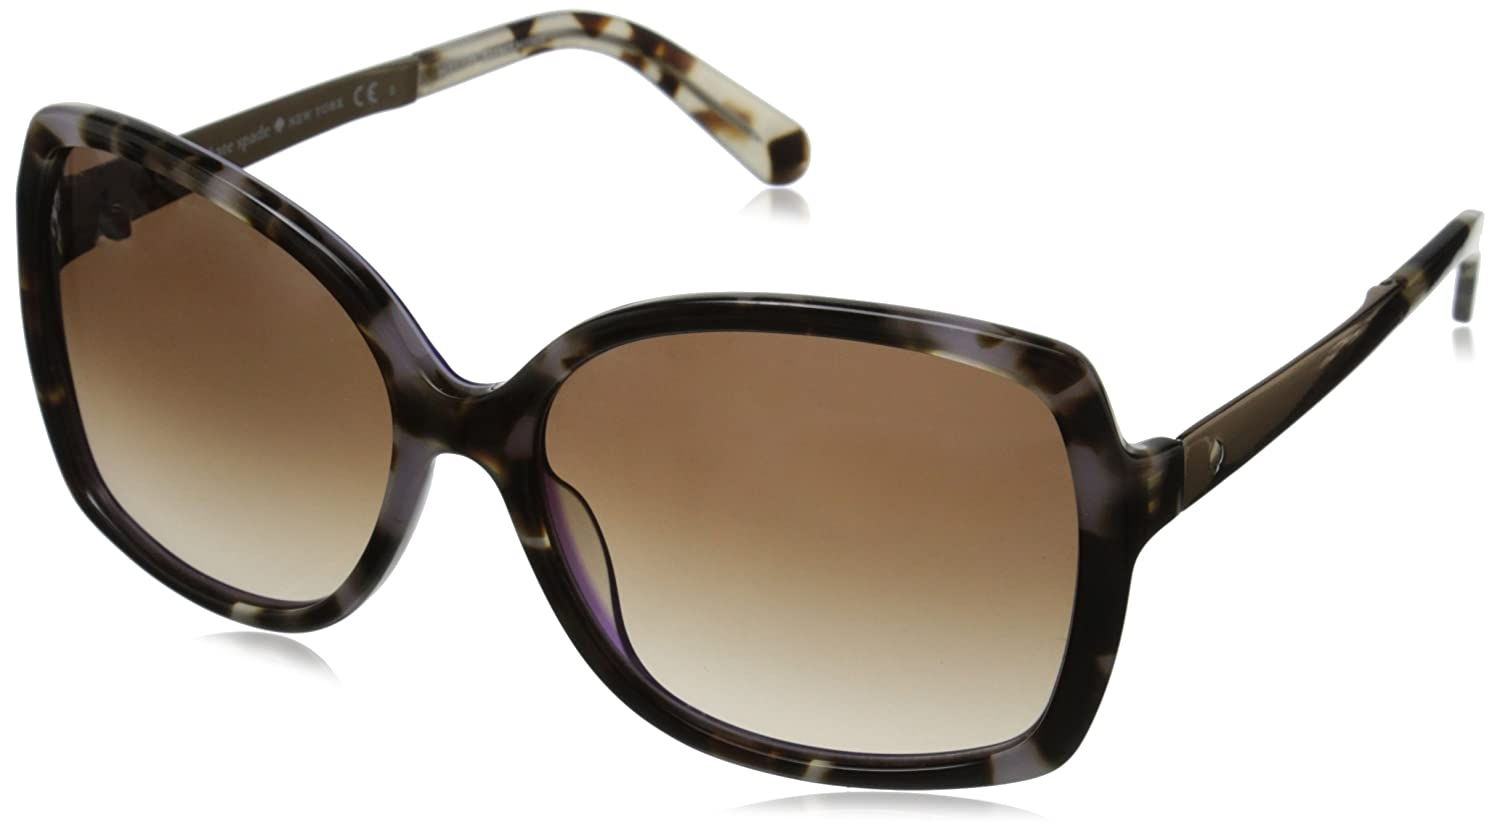 41d51b638d Amazon.com  Kate Spade Women s Darilynn Rectangular Sunglasses BLUE PTT BK  28 mm  Clothing